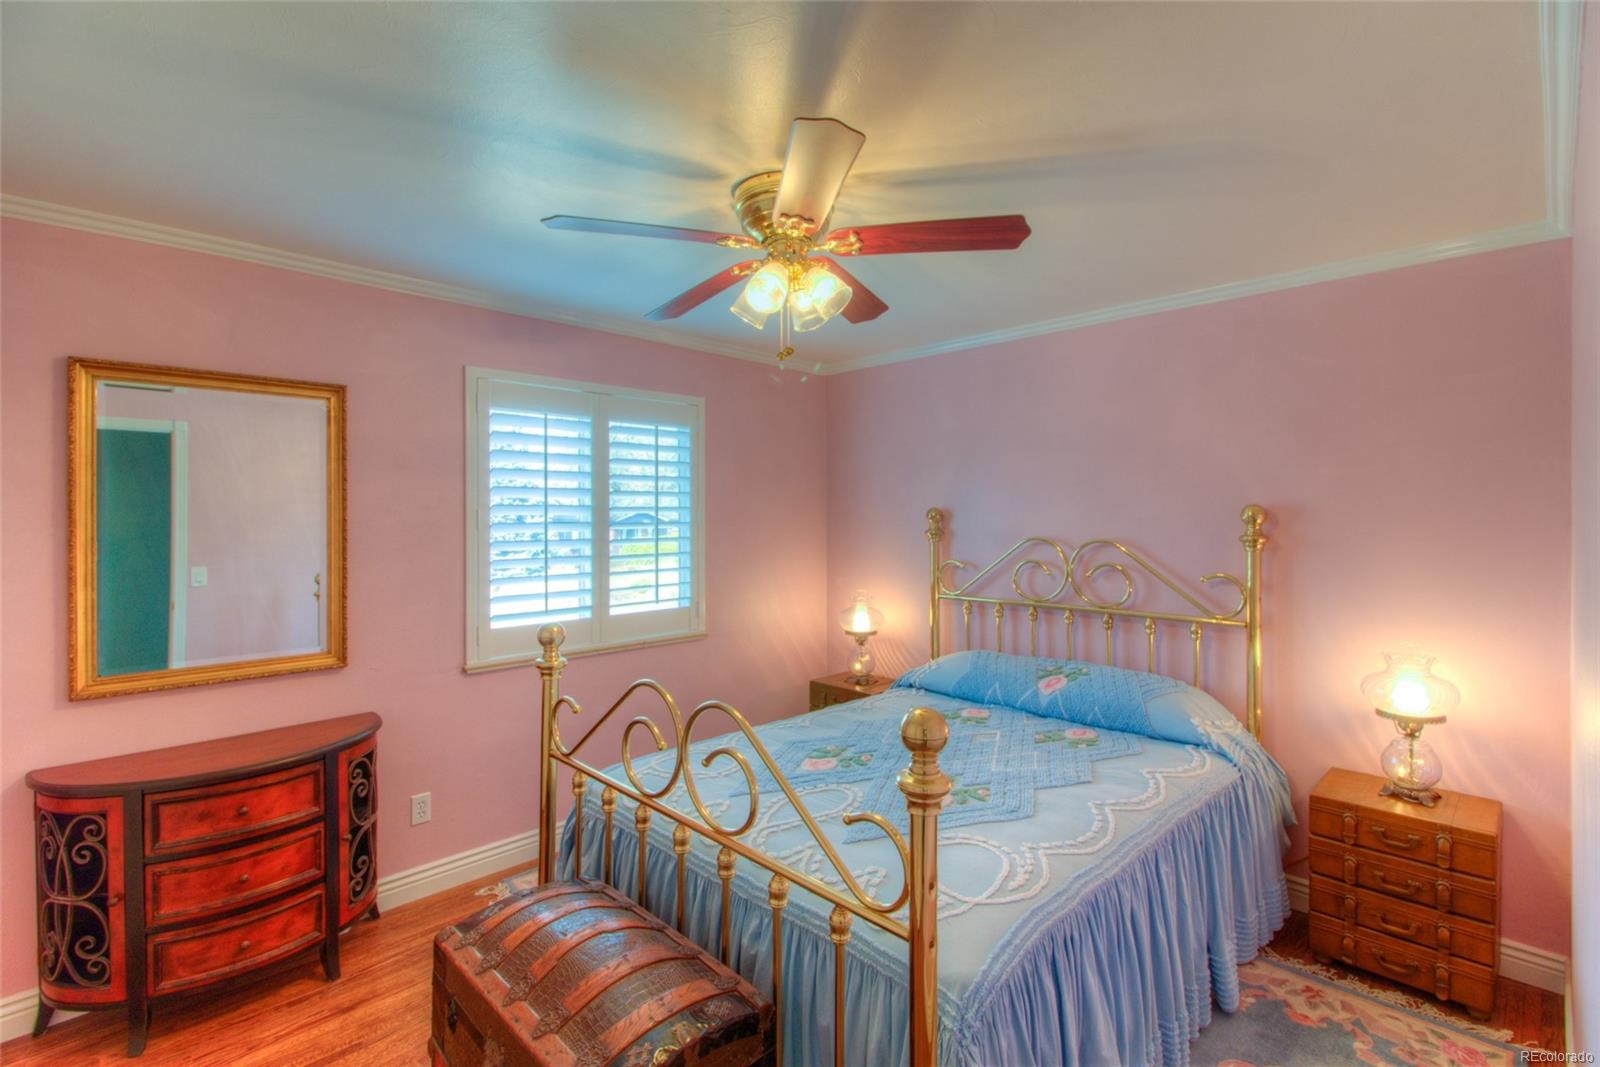 2nd Full Bedroom upstairs with crown molding, plantation shutters and hardwood floors